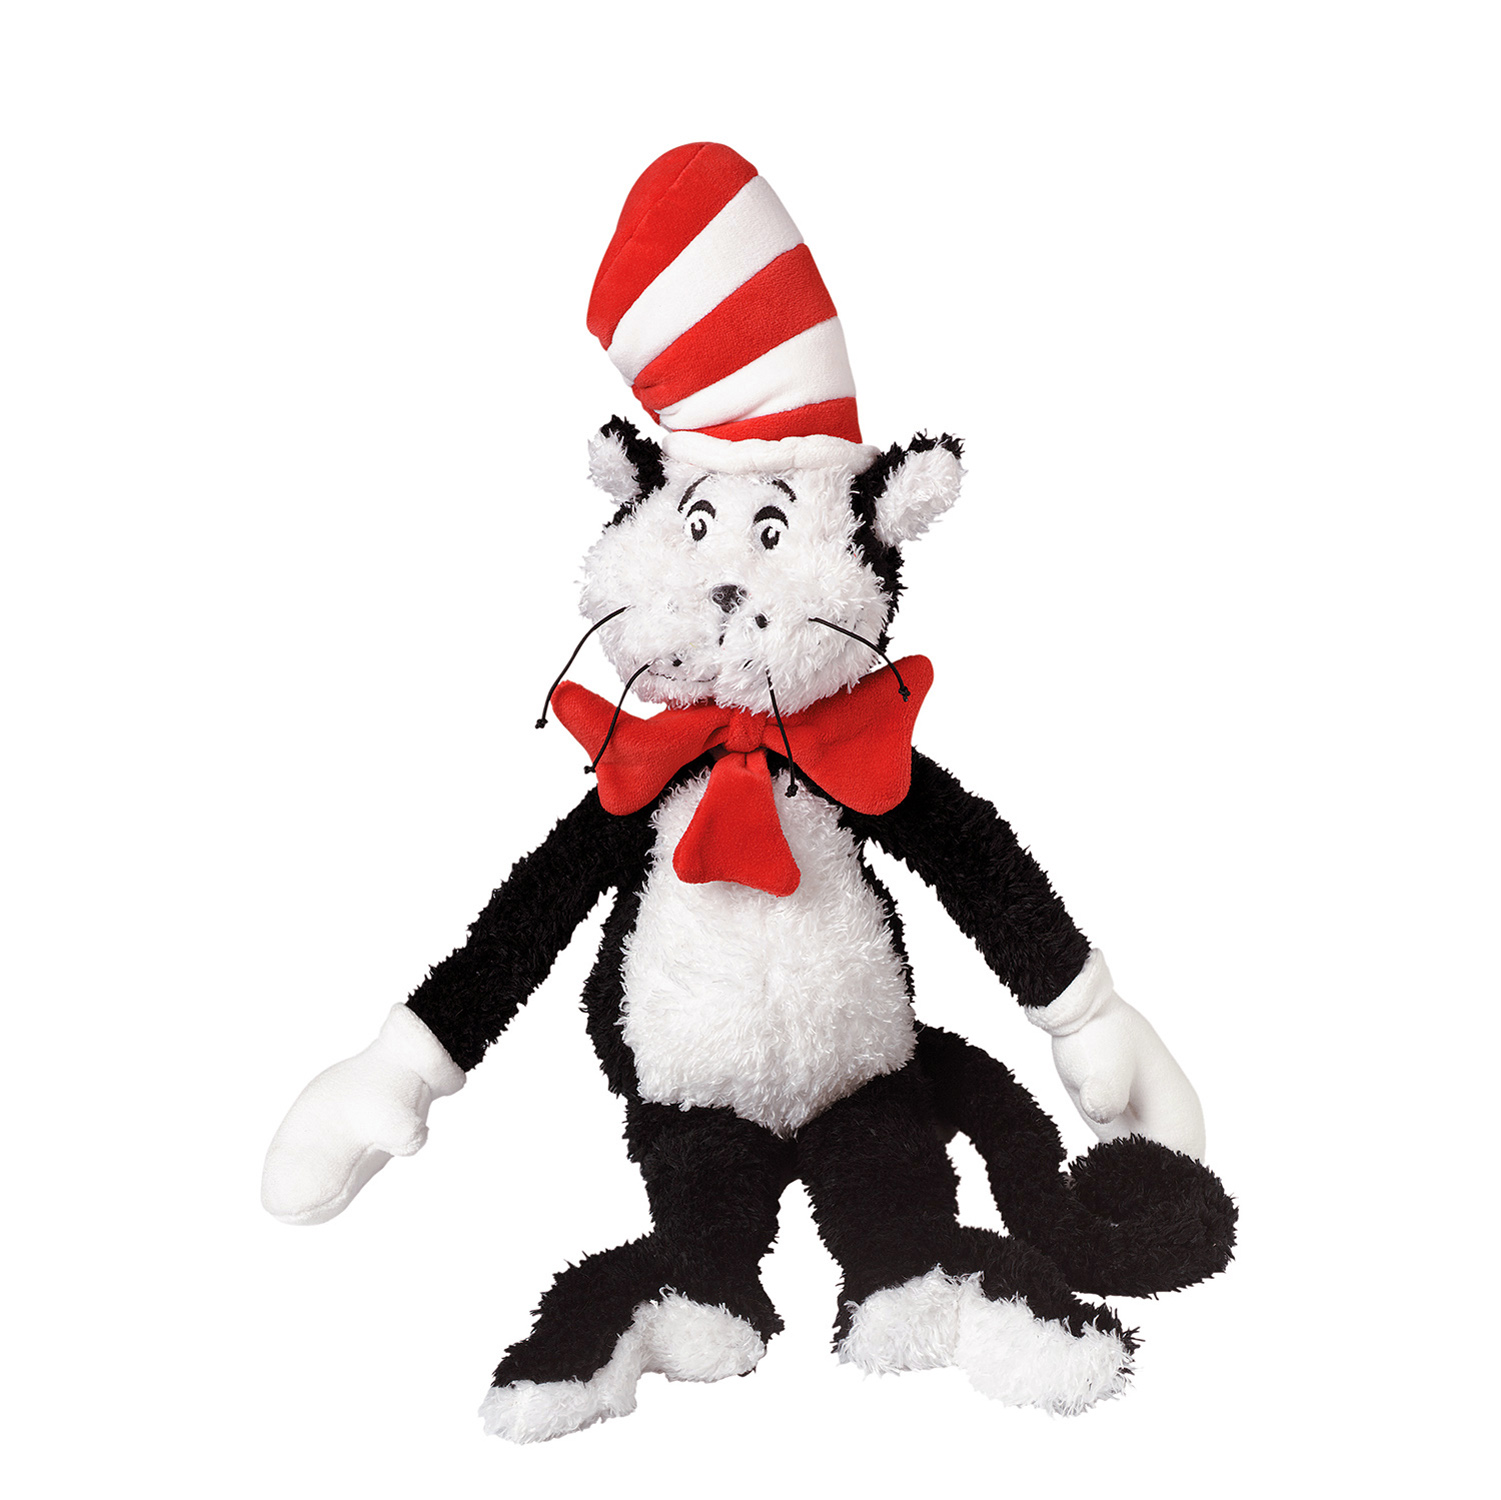 The Cat In The Hat 20 inch Plush Soft Toy